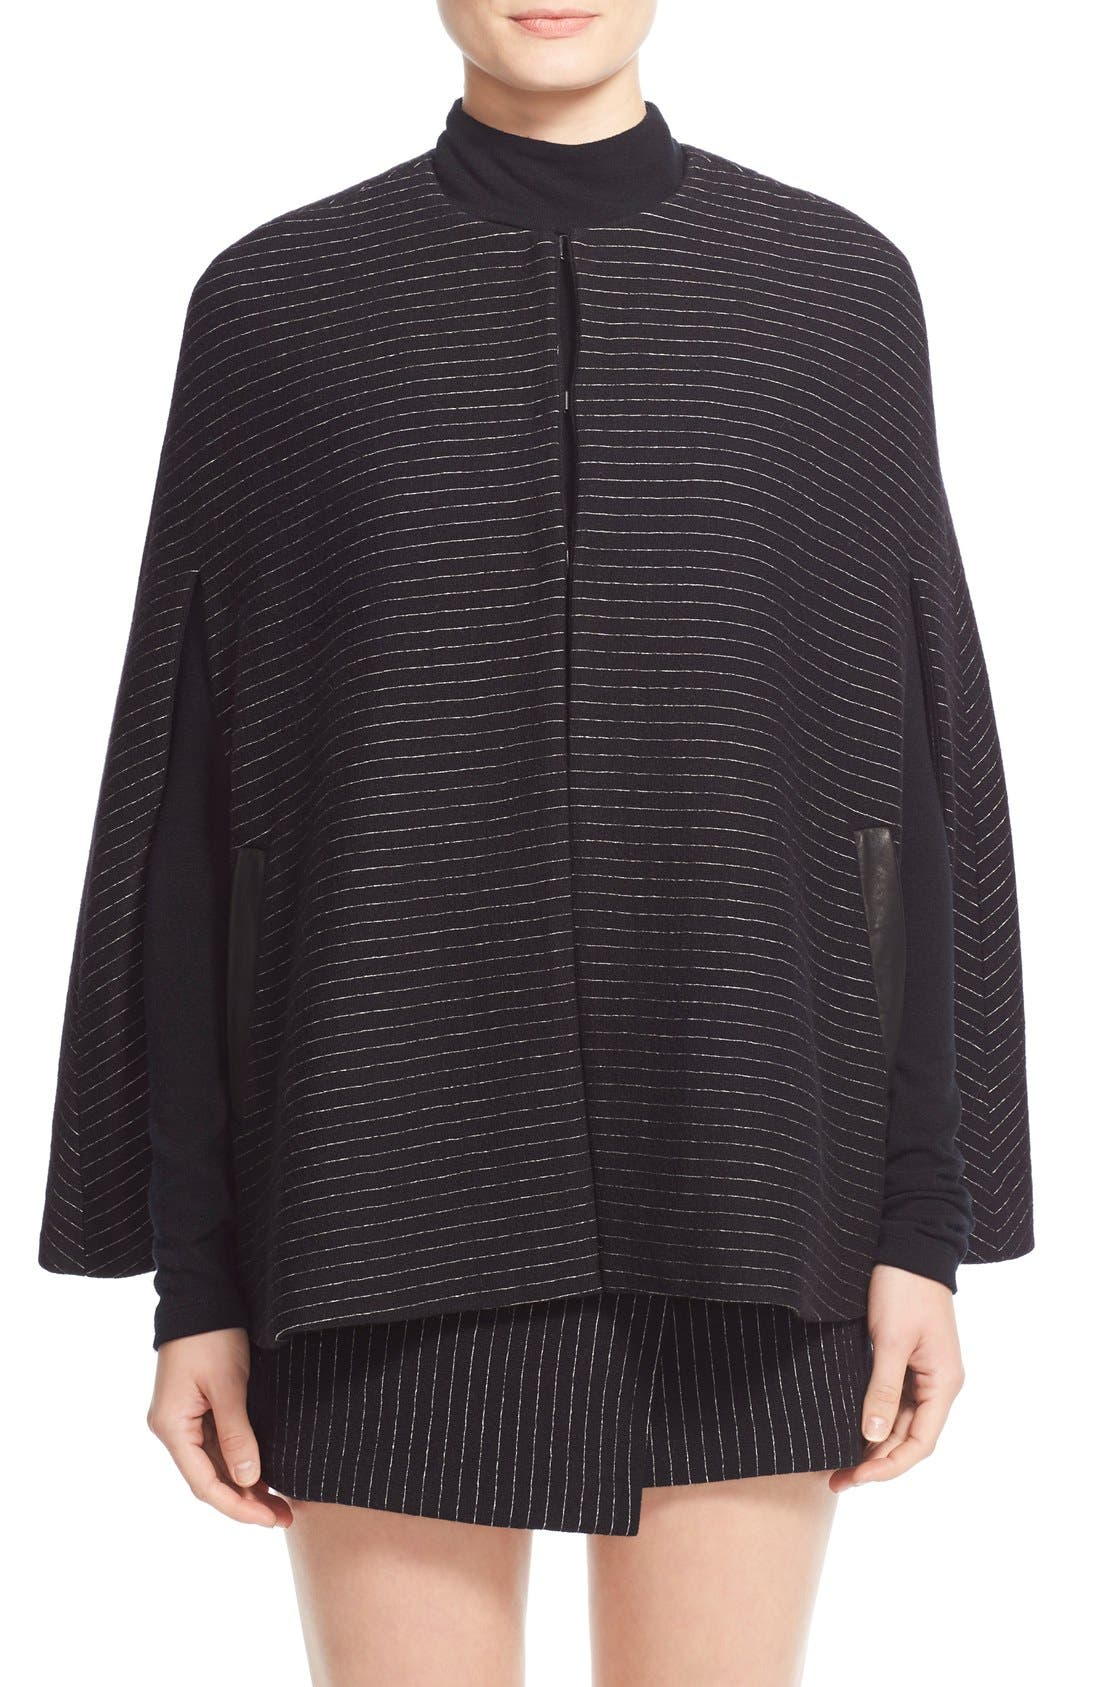 Alternate Image 1 Selected - Alice + Olivia 'Kingsley' Pinstripe Wool Cape Coat